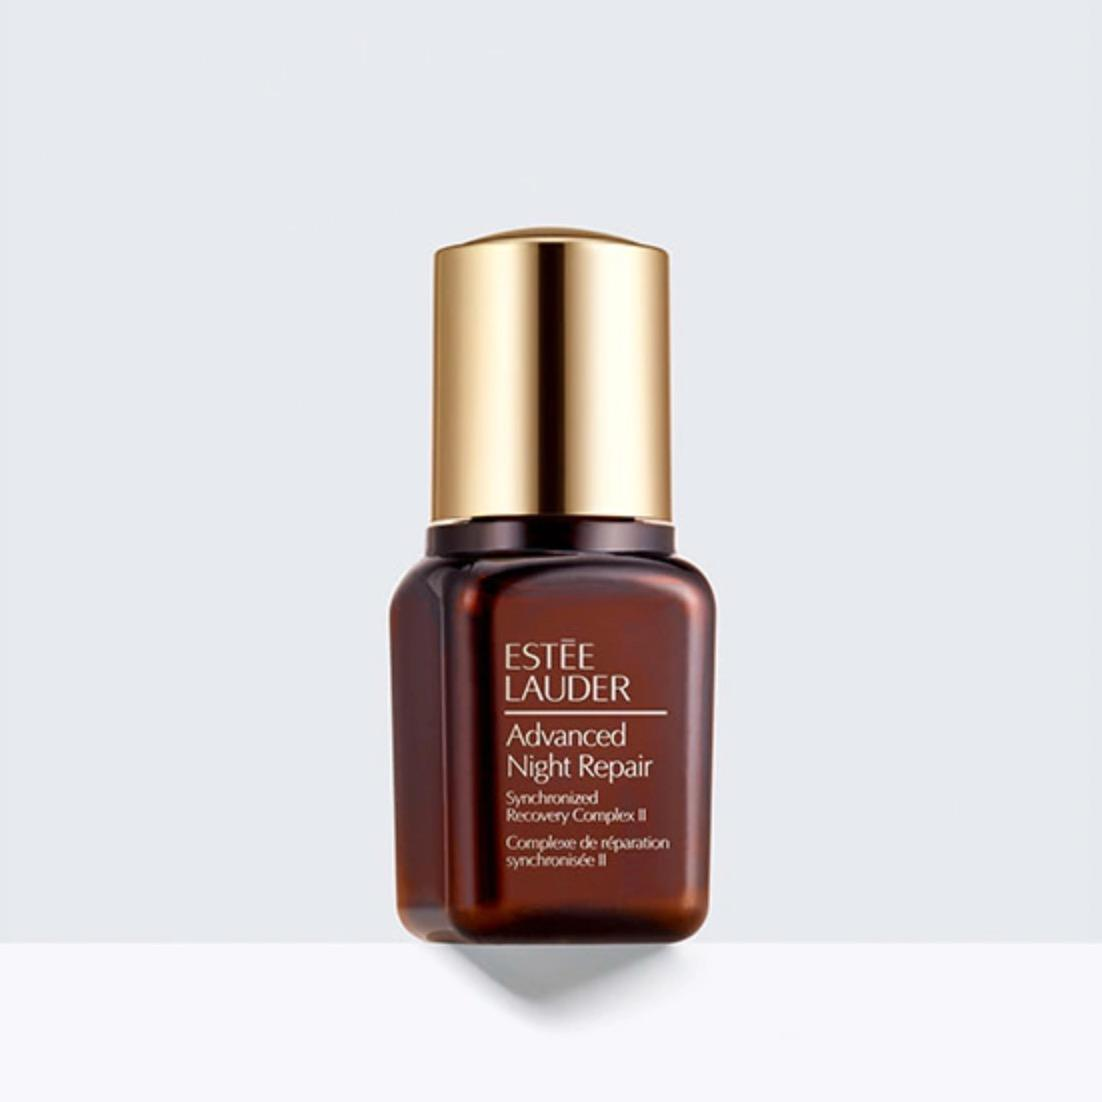 Estee Lauder Advanced Night Repair Synchronized Recovery Complex Ii 7ml Multiple Signs Of Aging Visible Age Prevention Dryness Dehydration Lines And Wrinkles Dullness Loss Of Radiance Lazada Singapore